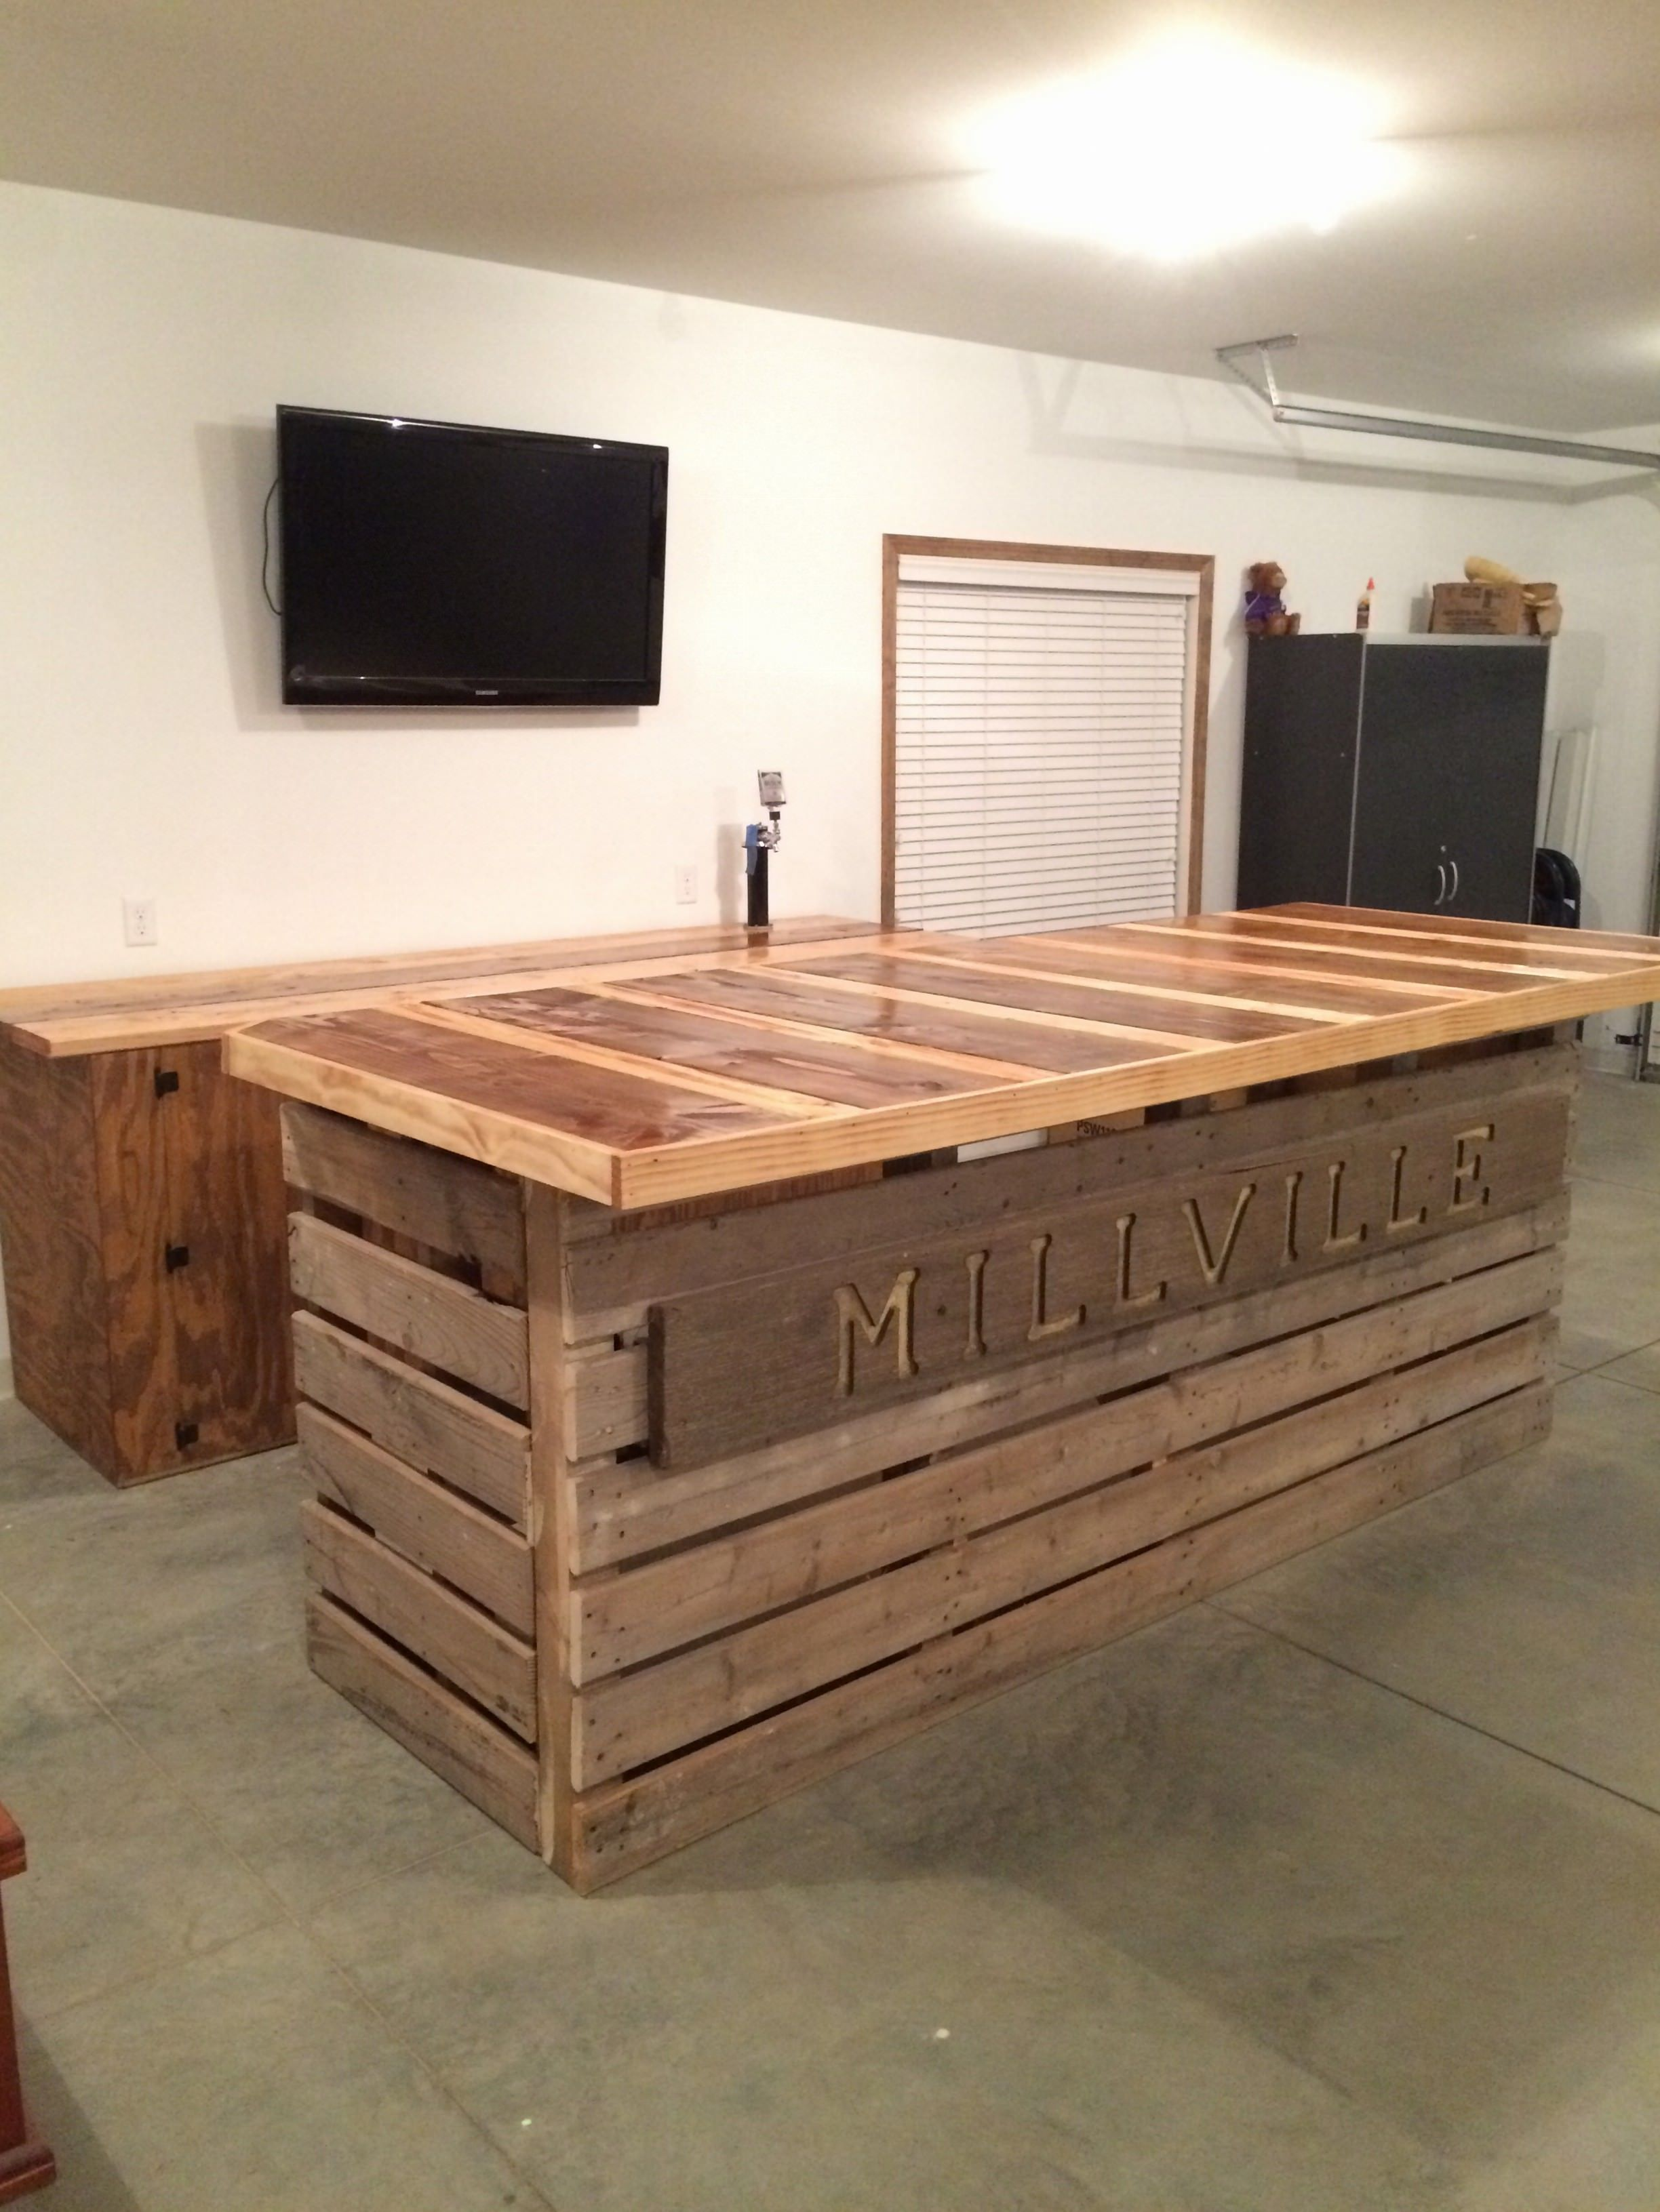 Pallet Bar 1001 Pallets Wood Pallet Bar Wooden Pallet Bar Wooden Pallet Projects